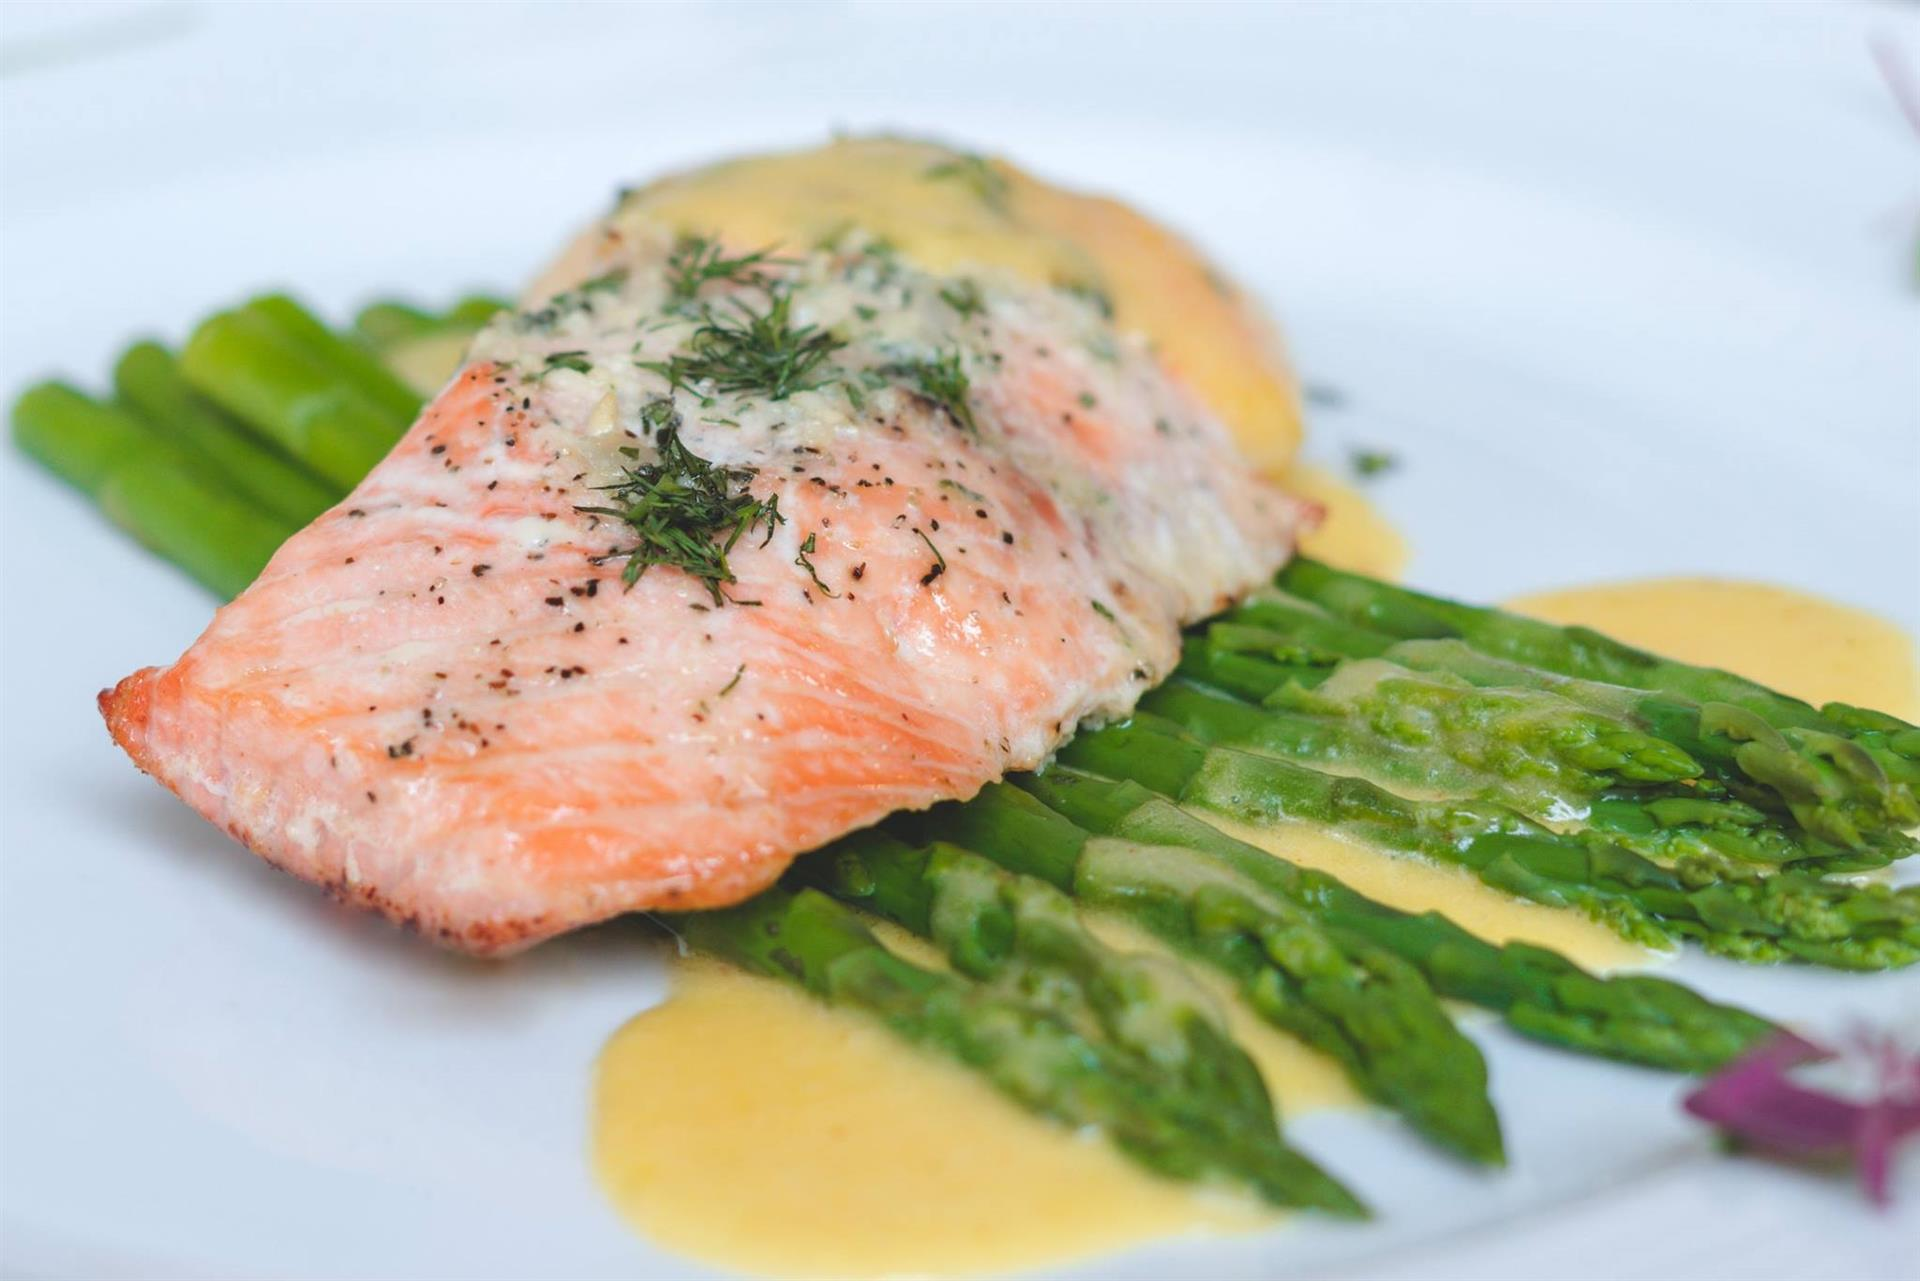 North Atlantic Salmon: Wild caught, cedar plank, maple pecan glaze served with asparagus